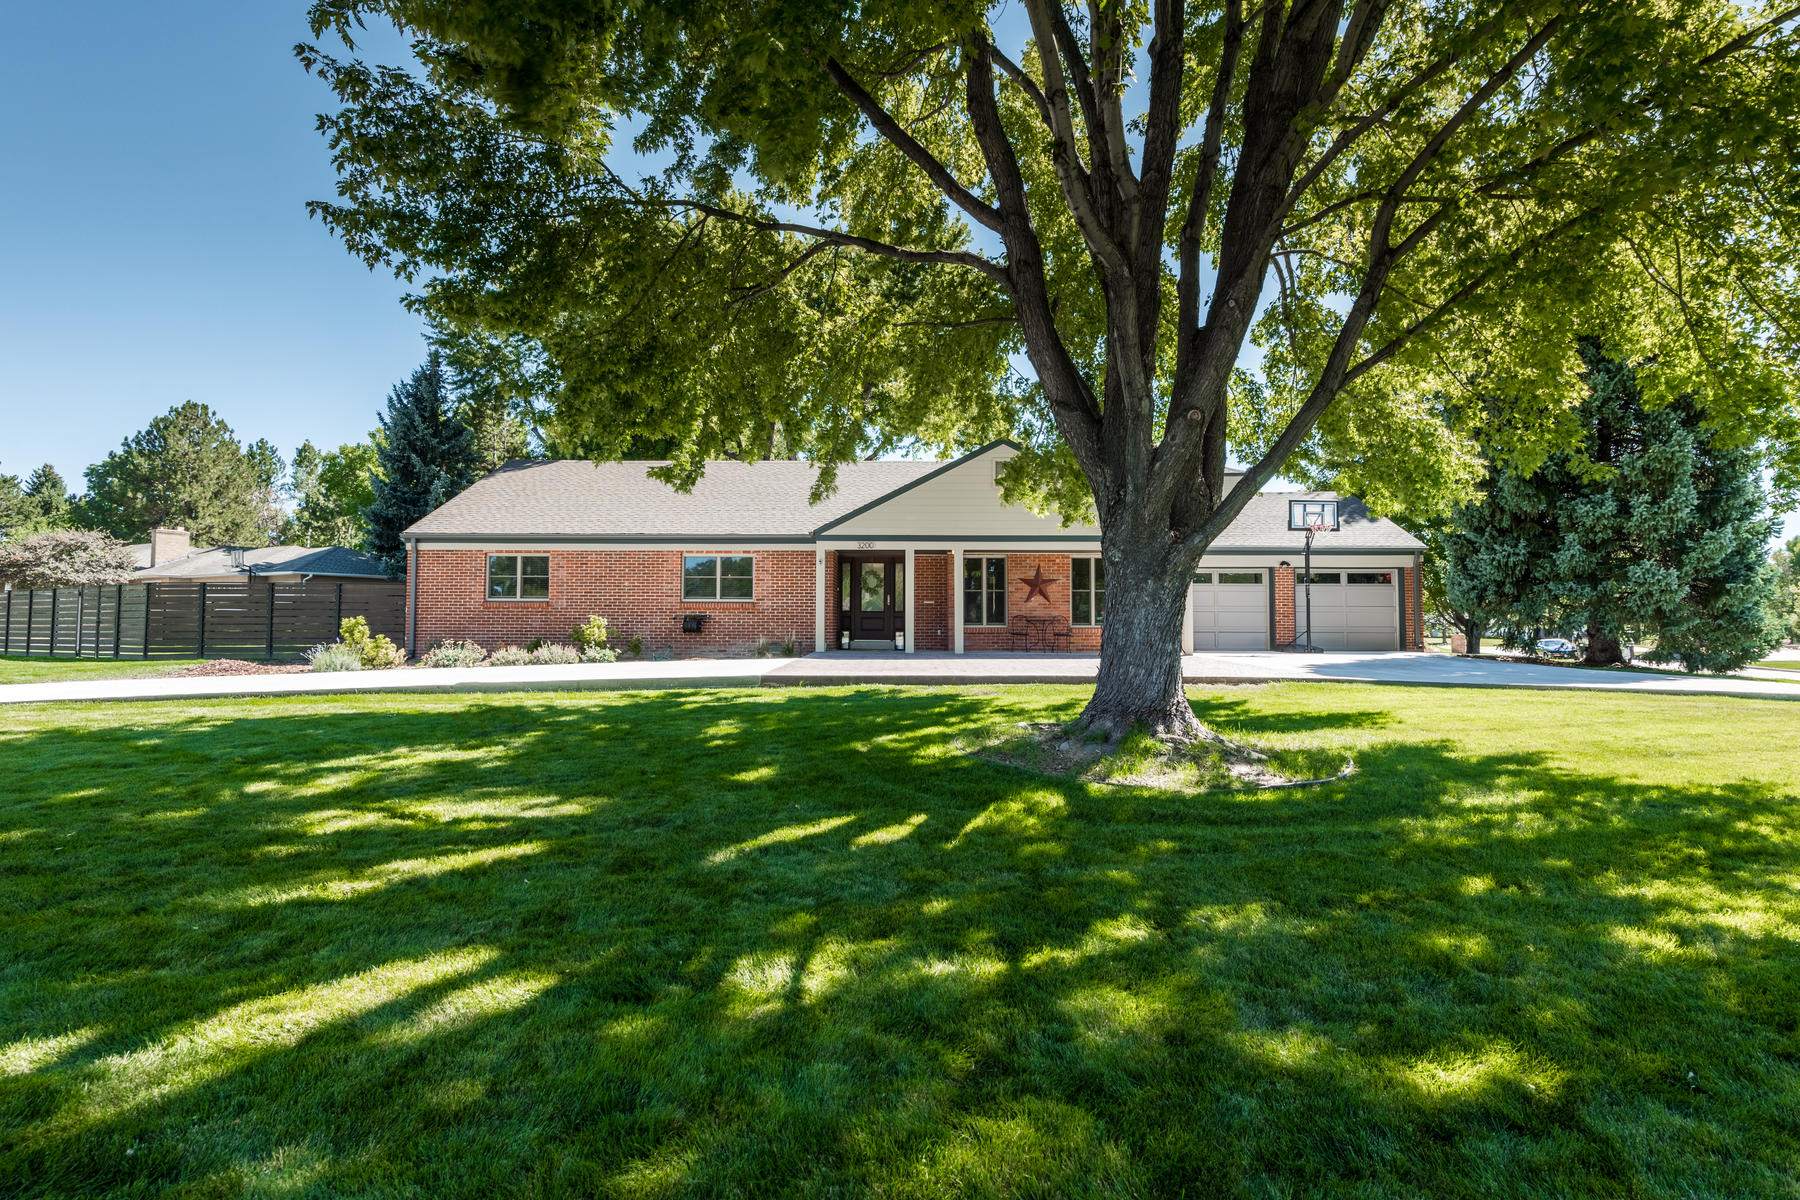 Single Family Home for Active at Set on a perfect half-acre in the heart of Cherry Hills! 3200 E Flora Pl Denver, Colorado 80210 United States